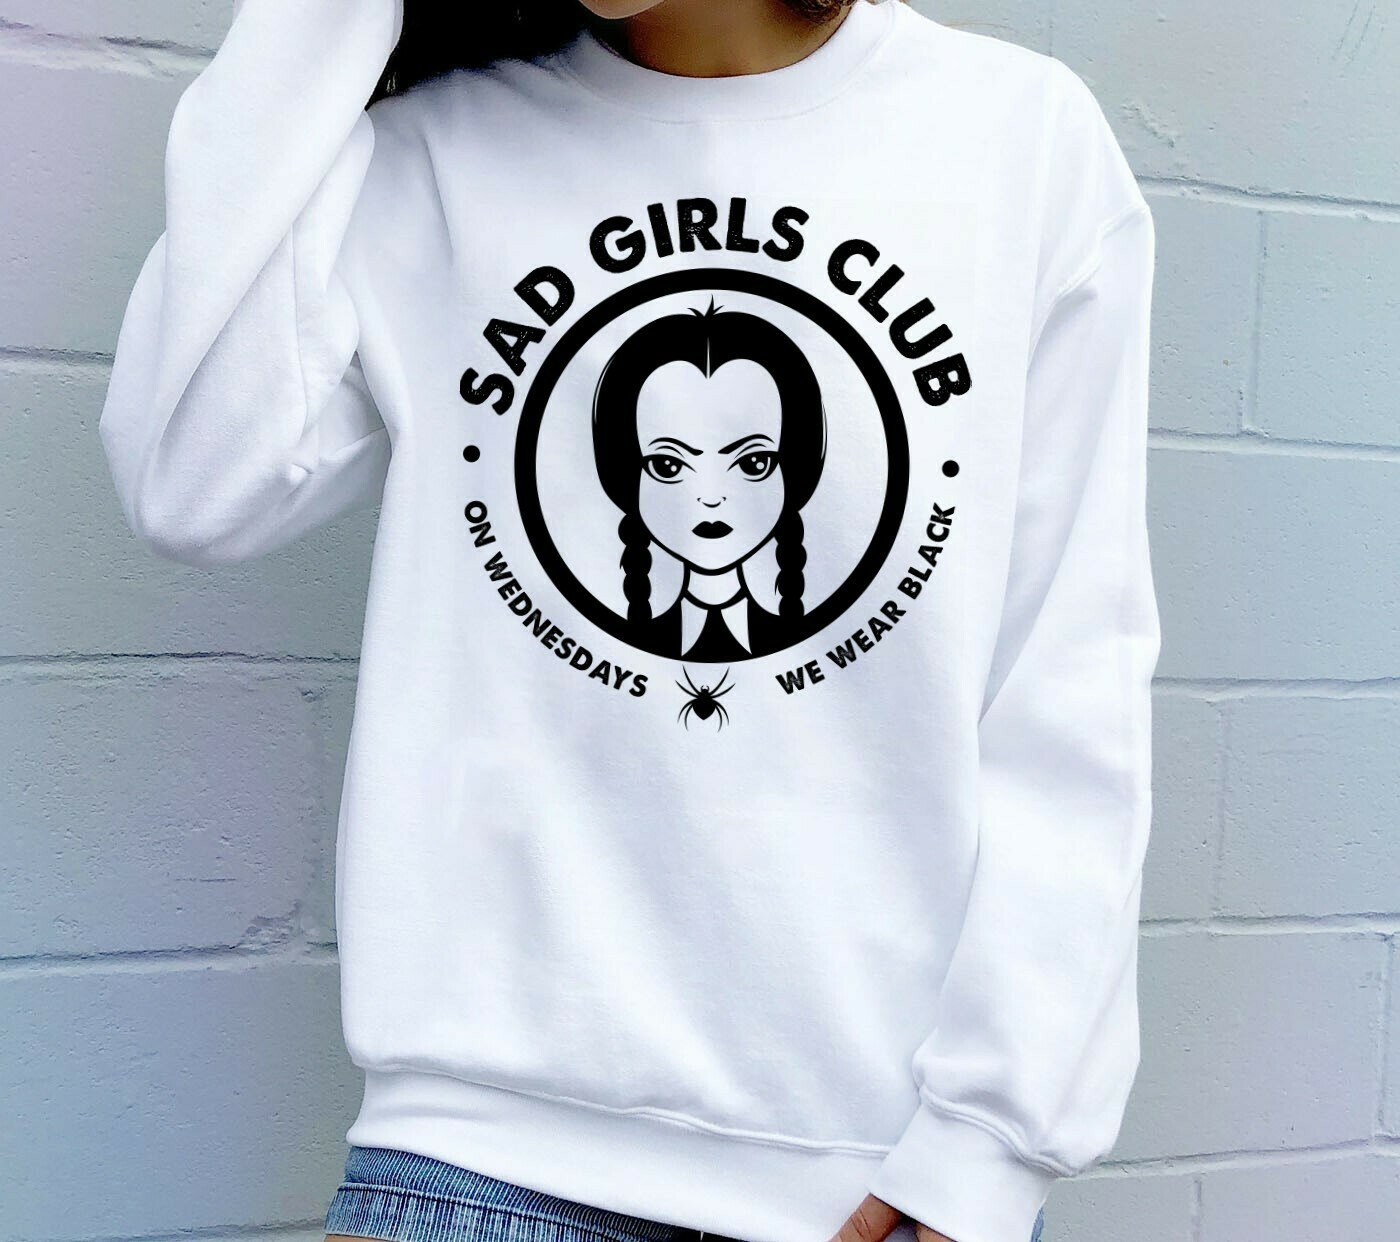 Sad Girls Club Wednesday Addams Adorable little witch, Morticia's Addams daughter The hero of cosplay Gift T-shirt for Halloween day Long Sleeve Sweatshirt Hoodie Jolly Family Gifts